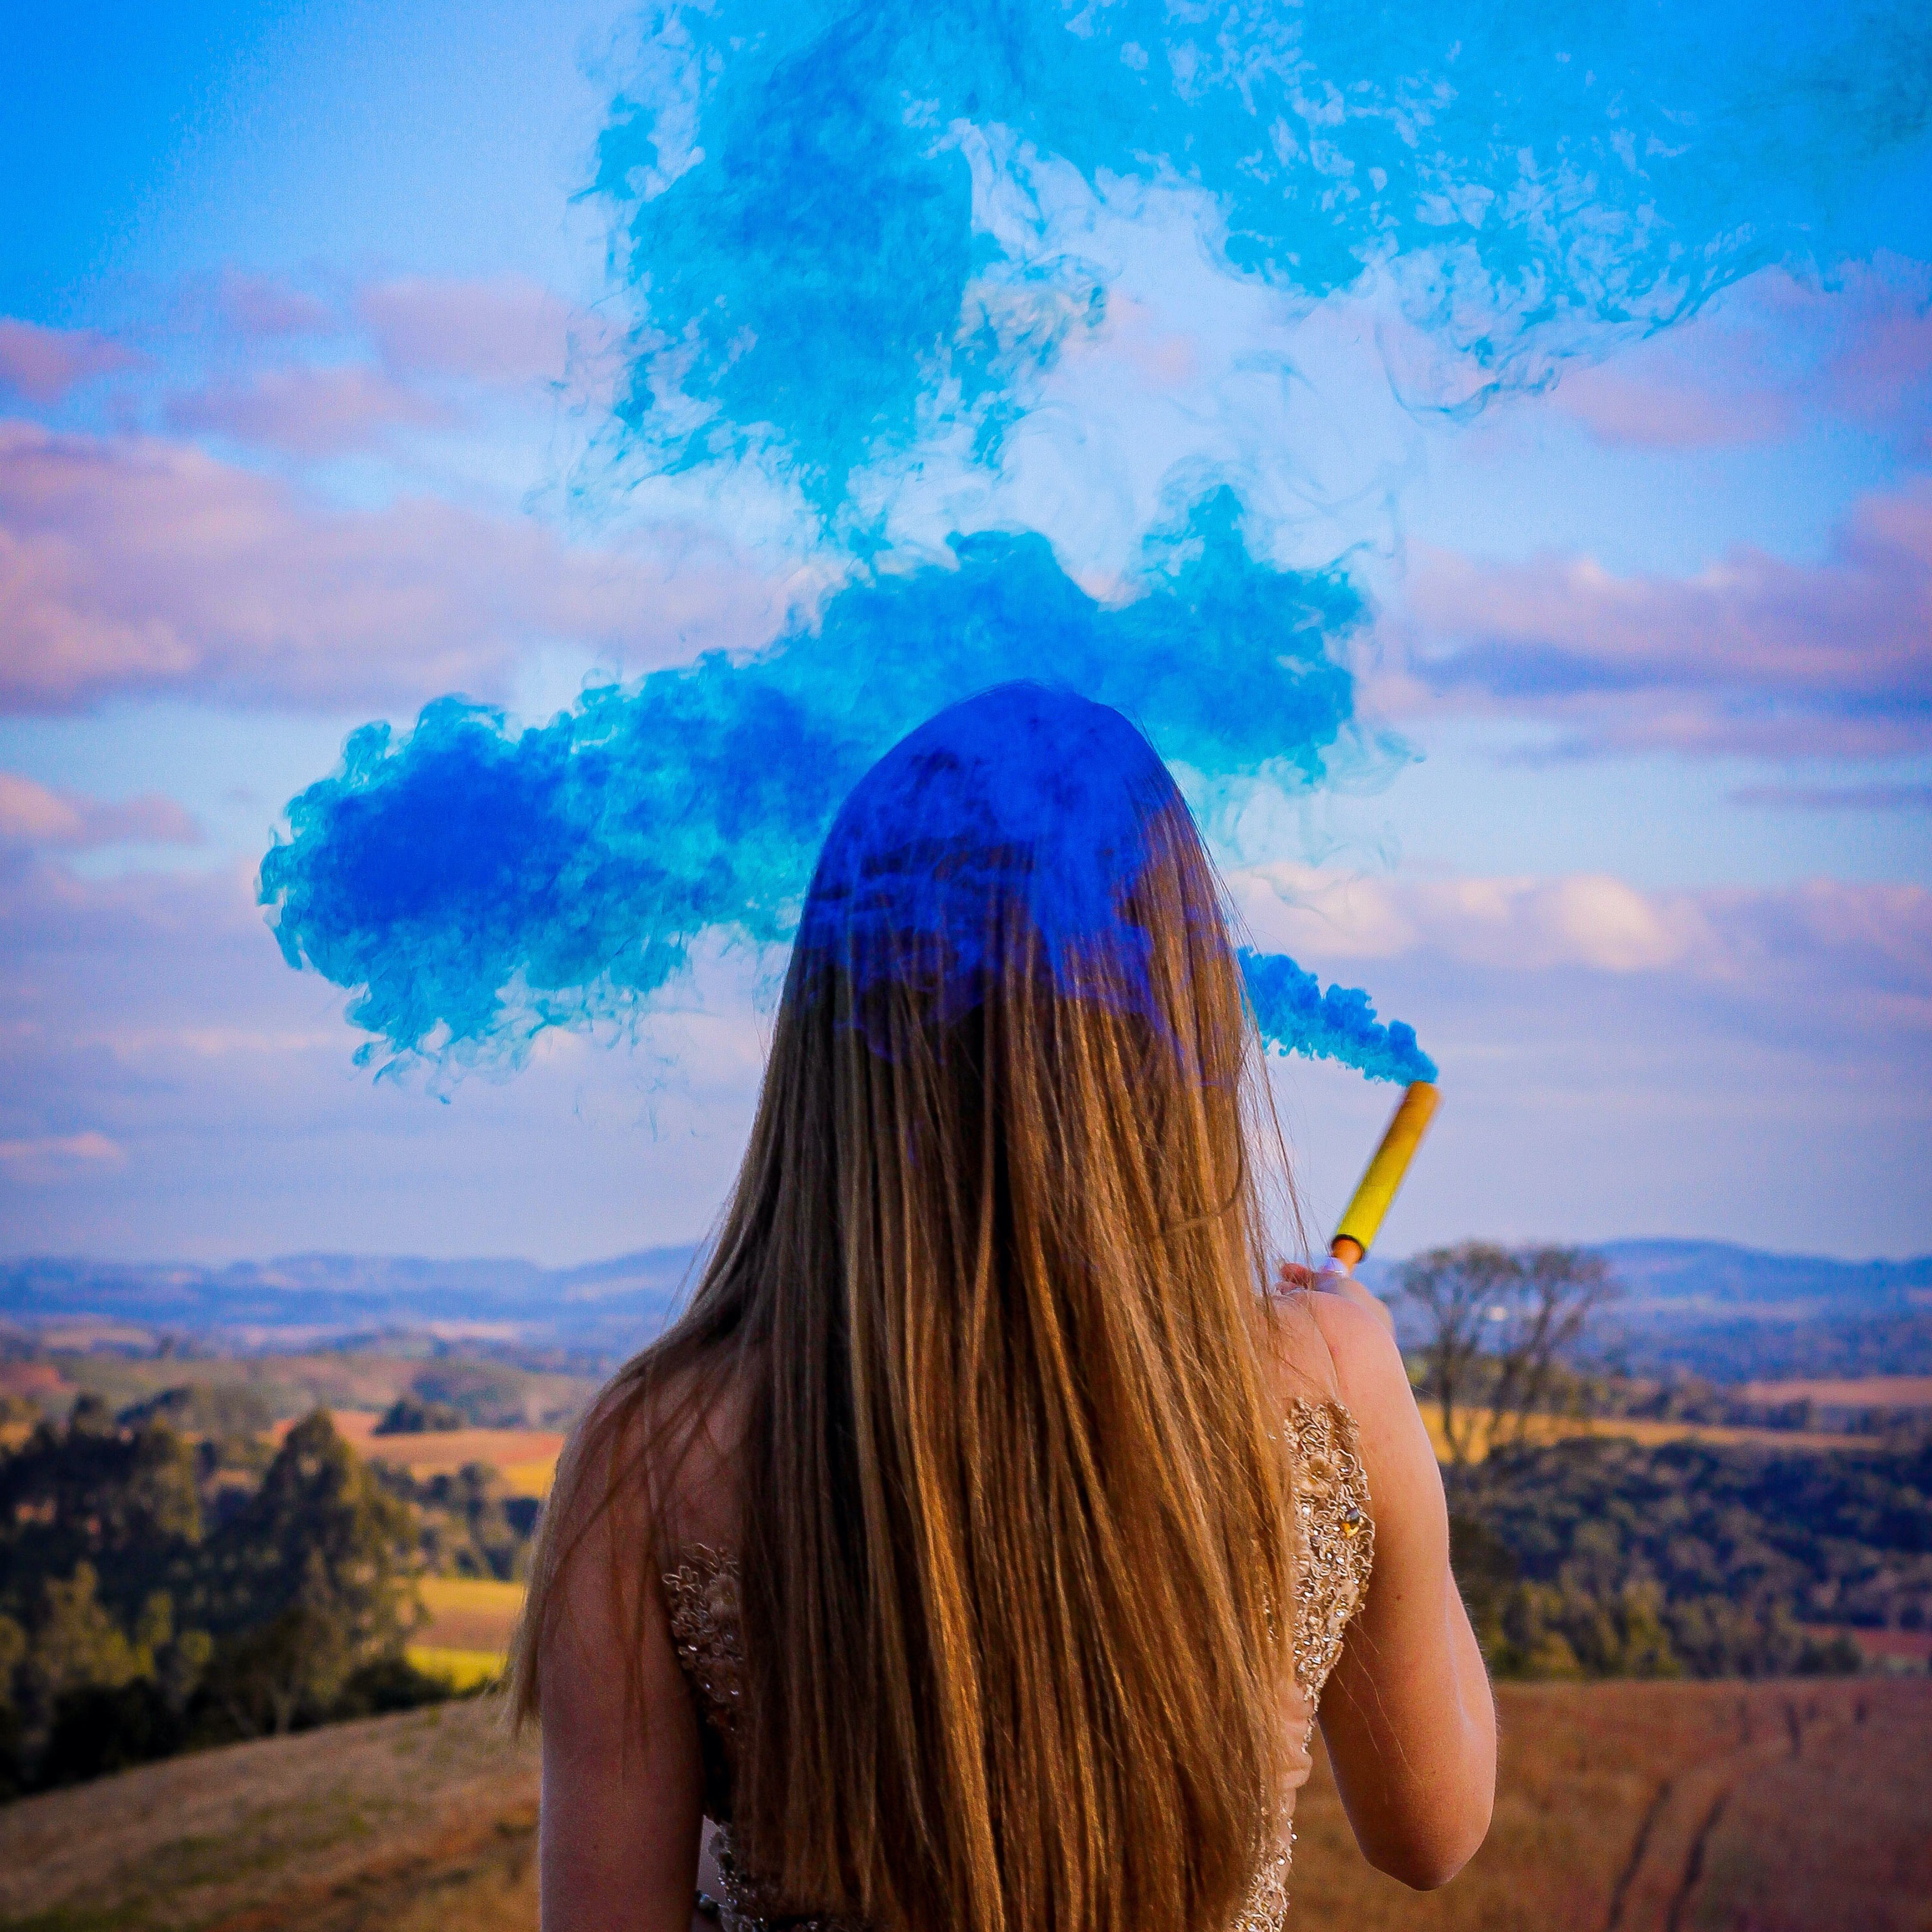 Blue wedding smoke bomb, Pantone colour of the year 2020